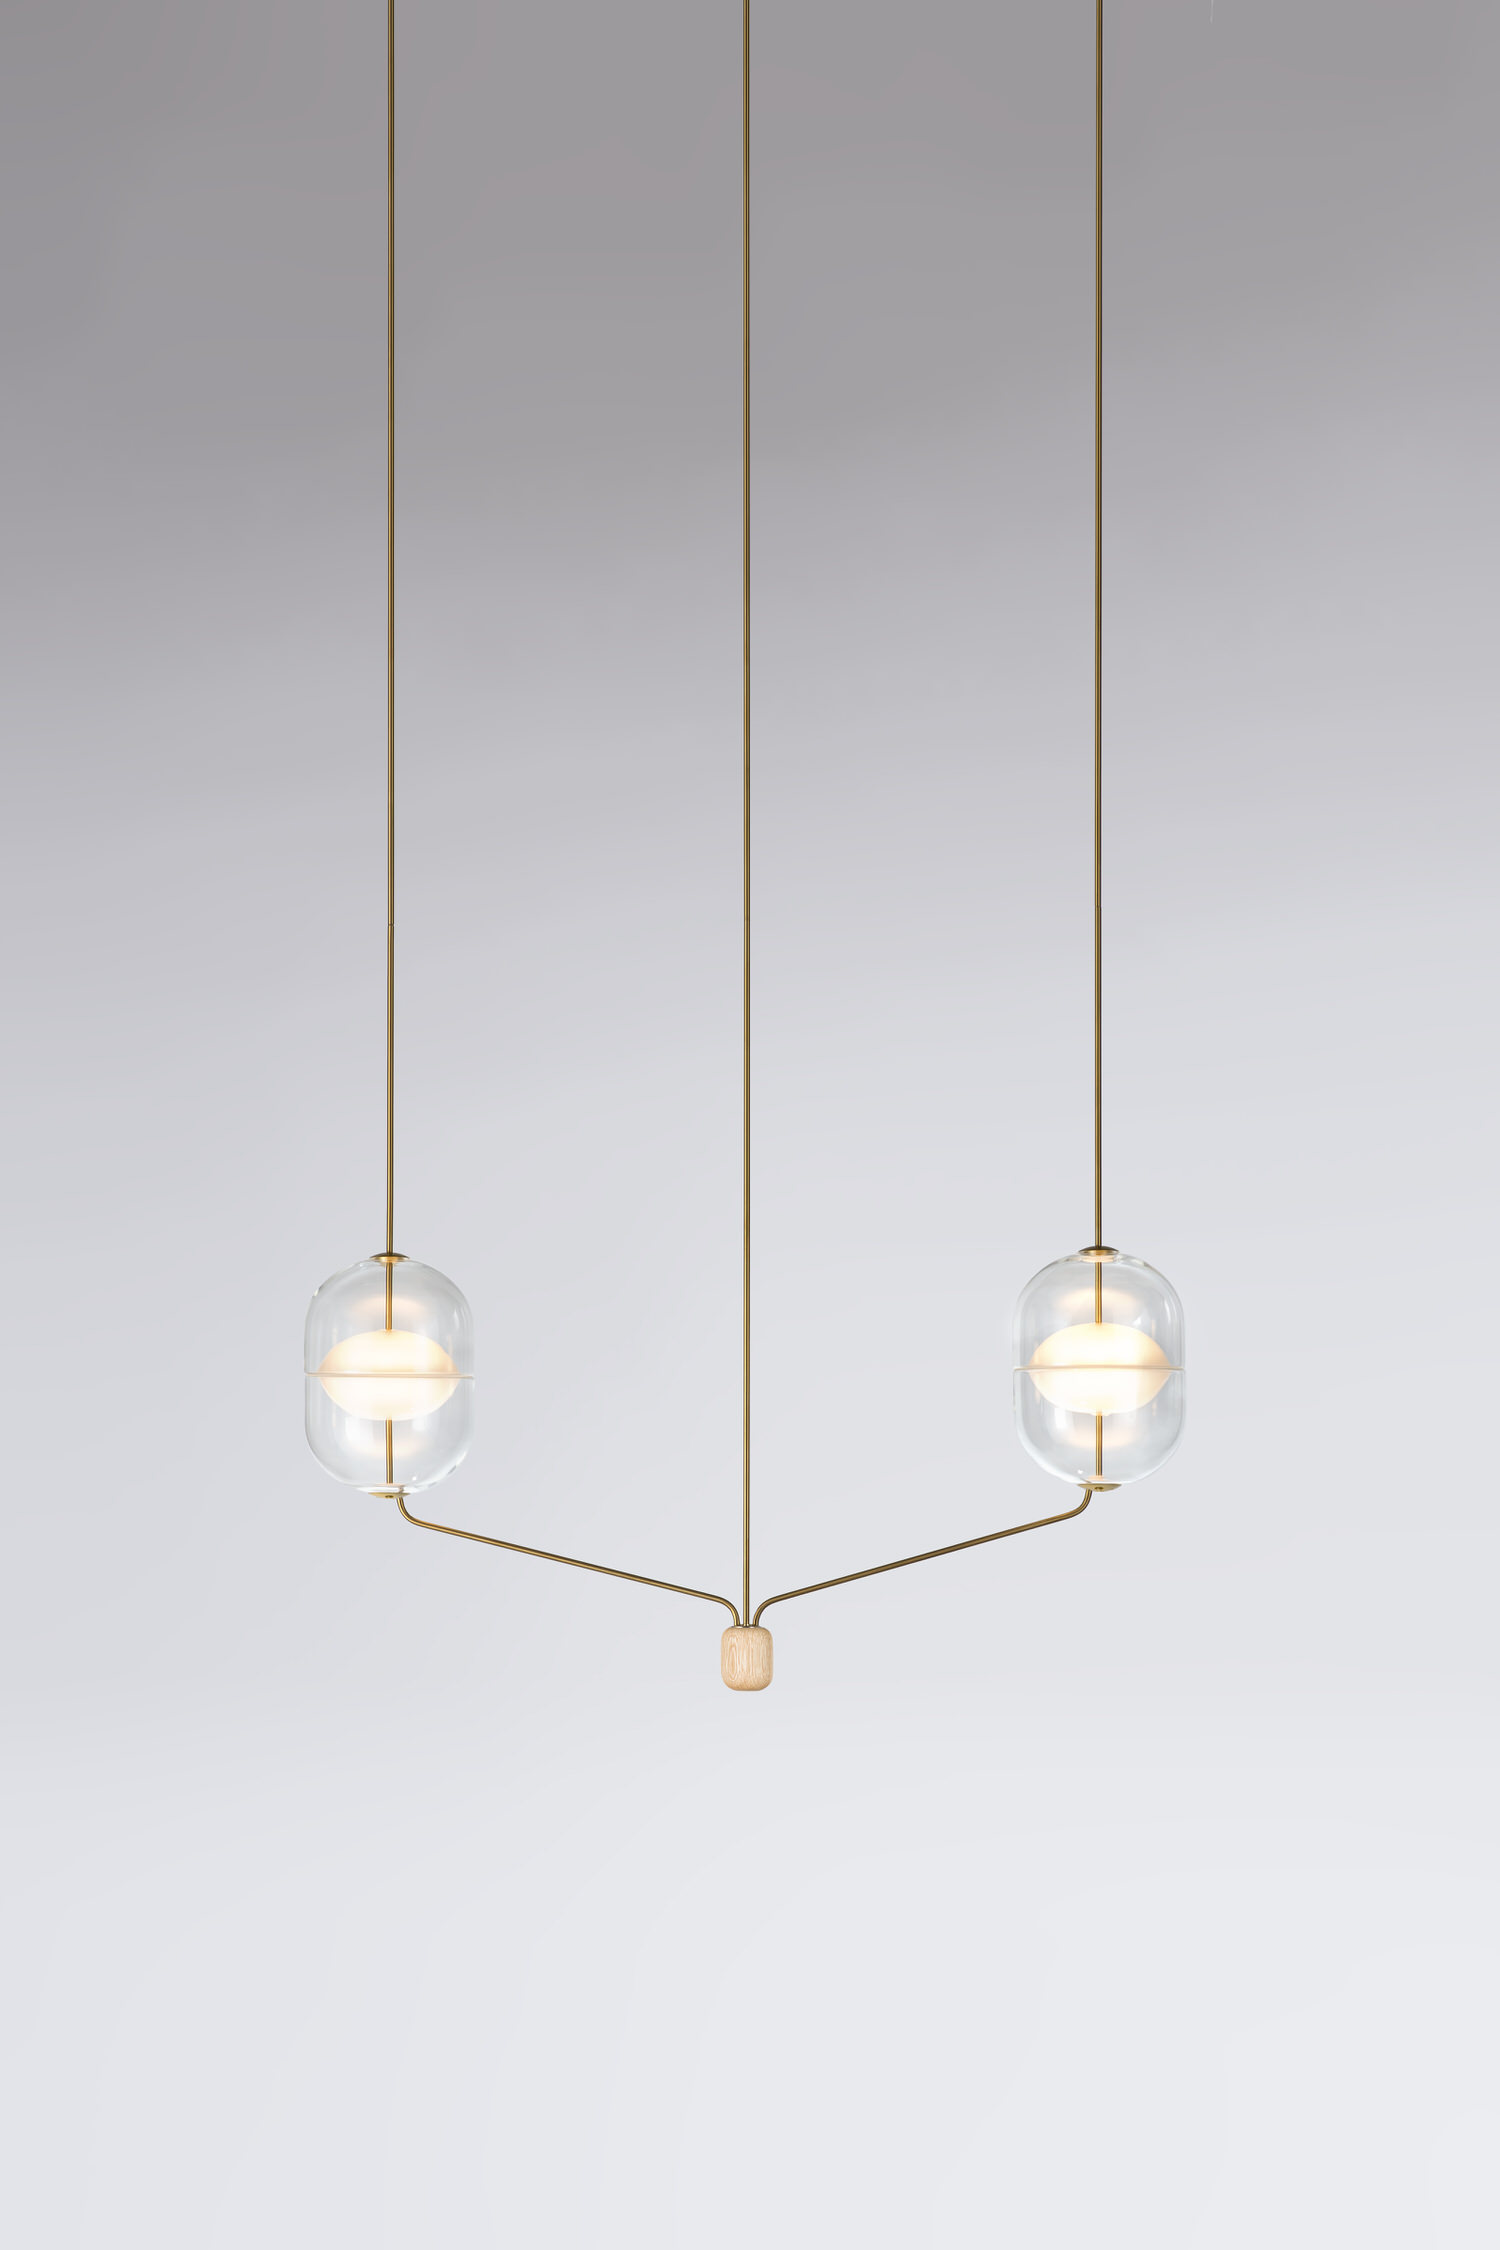 Indre Collection Nikolai Kotlarczyk For Rakumba, Lighting Design | Yellowtrace